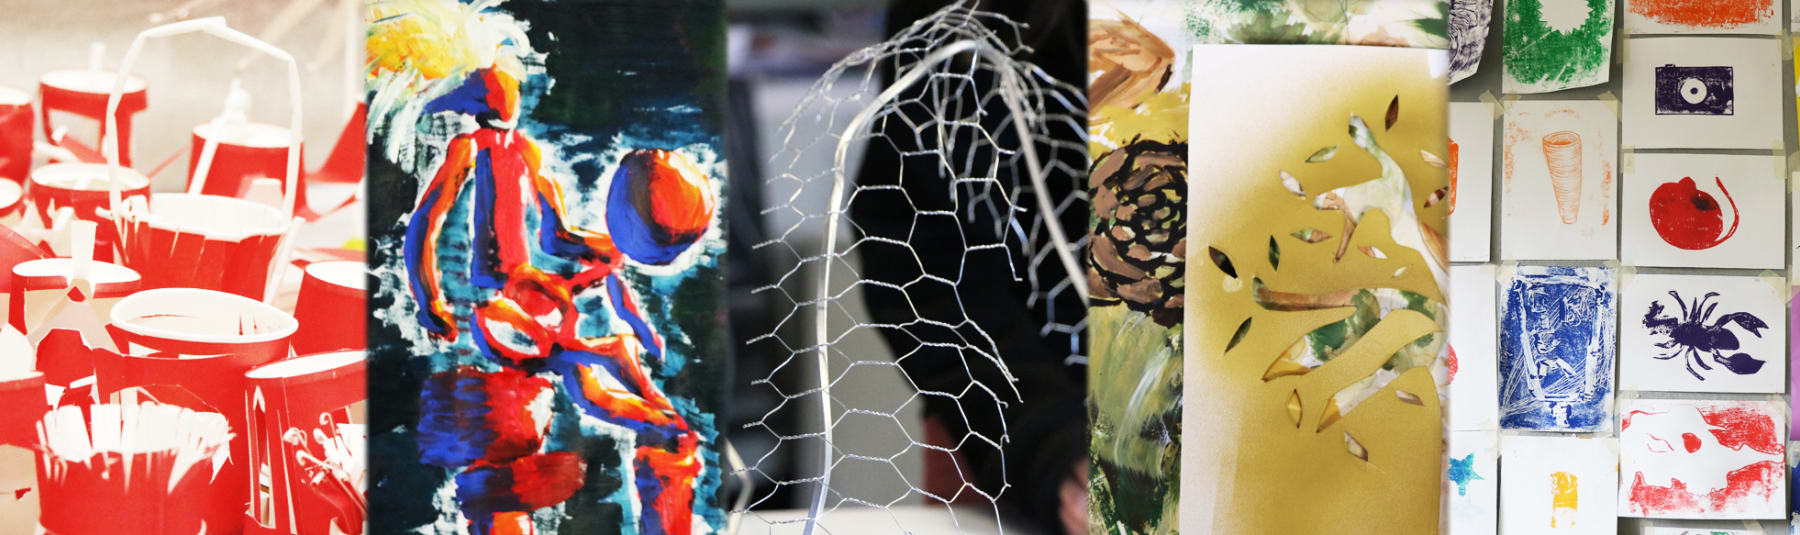 Examples of art work made by teenagers.